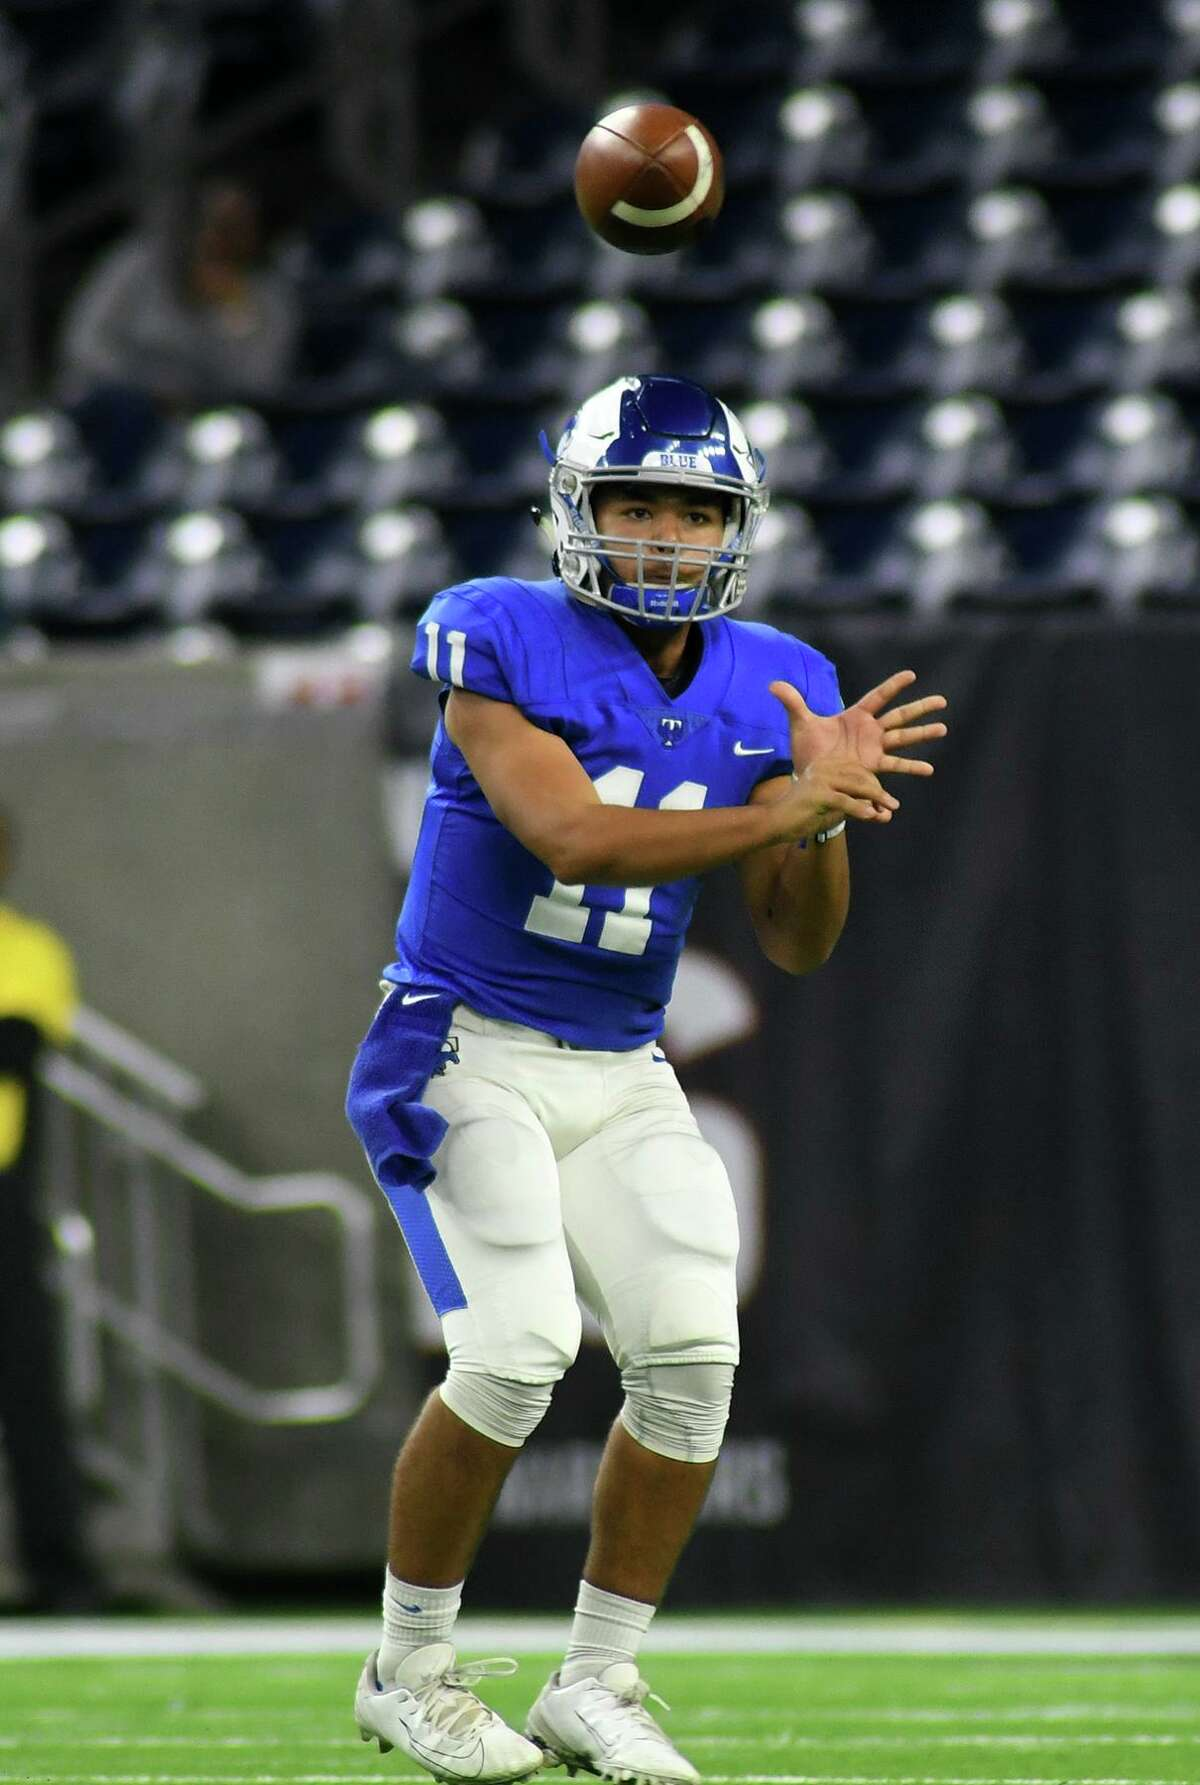 Katy Taylor junior quarterback J Jensen III targets a Mustang receiver on a pass play against Humble in the second quarter of their Region III-6A semi-final matchup at NRG Stadium on Saturday, Nov. 30, 2019.